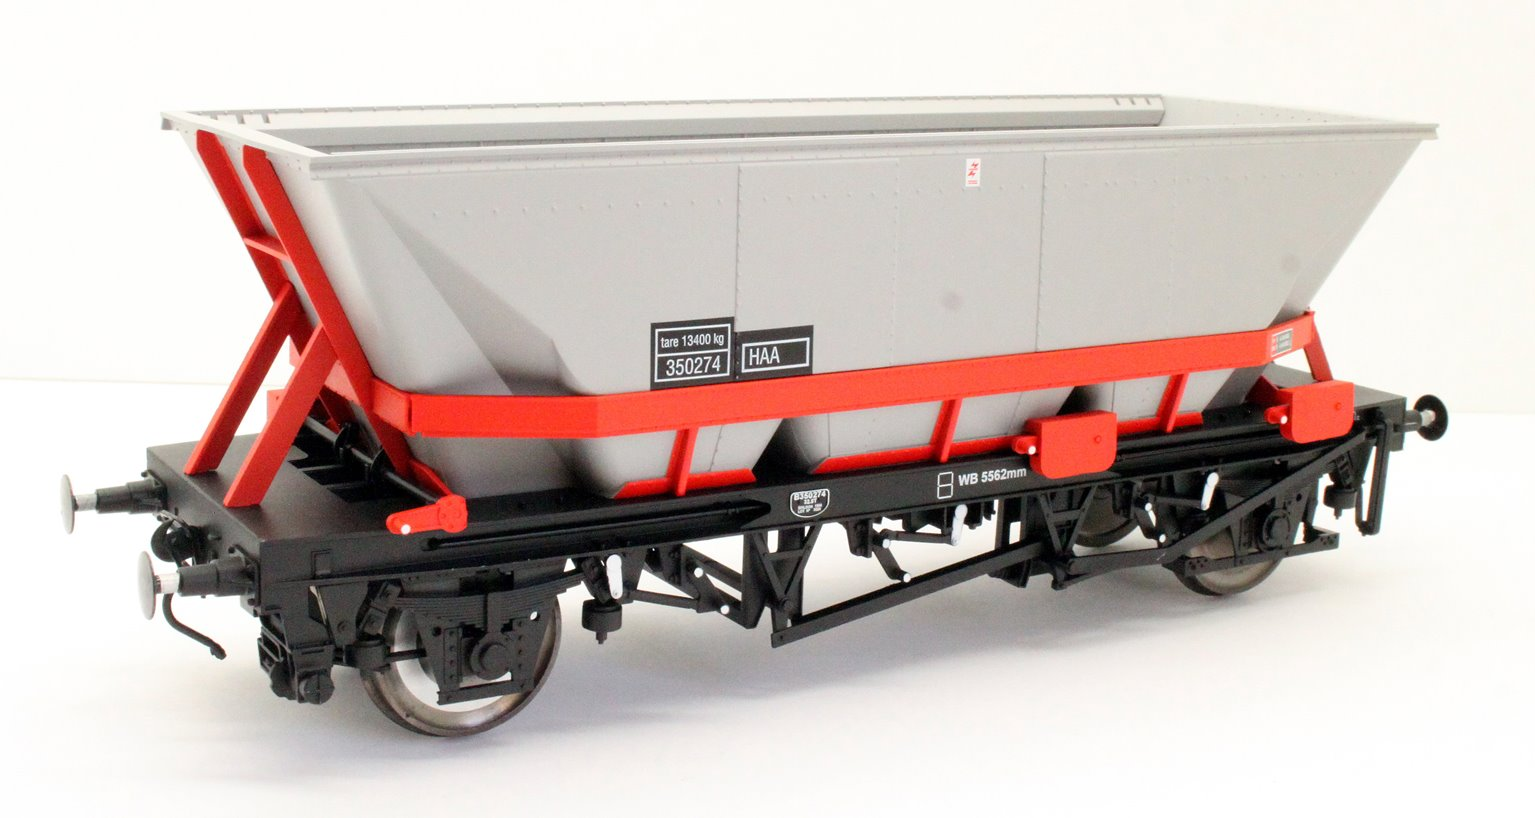 Dapol 7F-048-001 MGR HA A Coal Wagon (red cradle) #350274